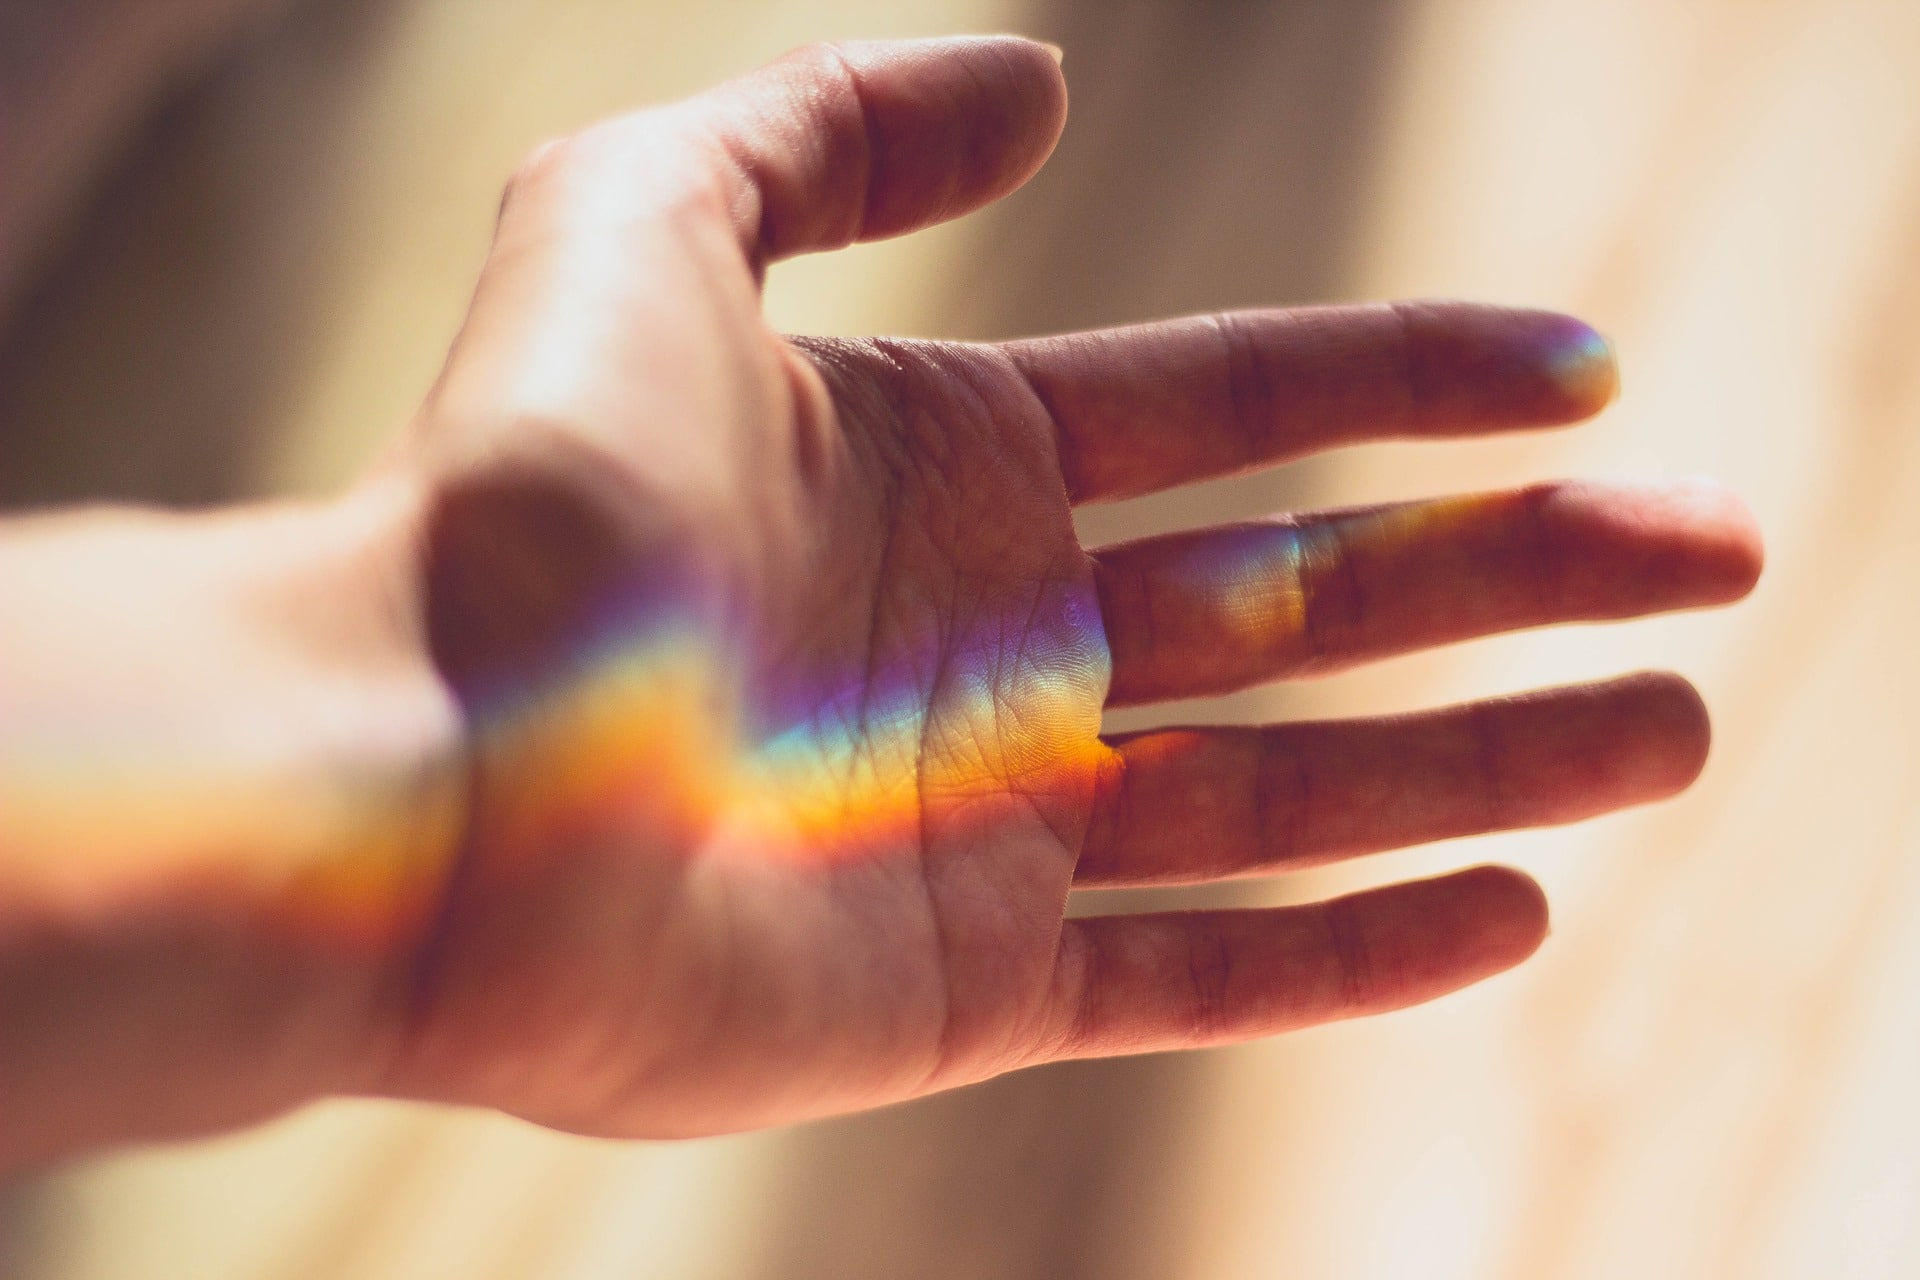 light of rainbow reflecting on a hand